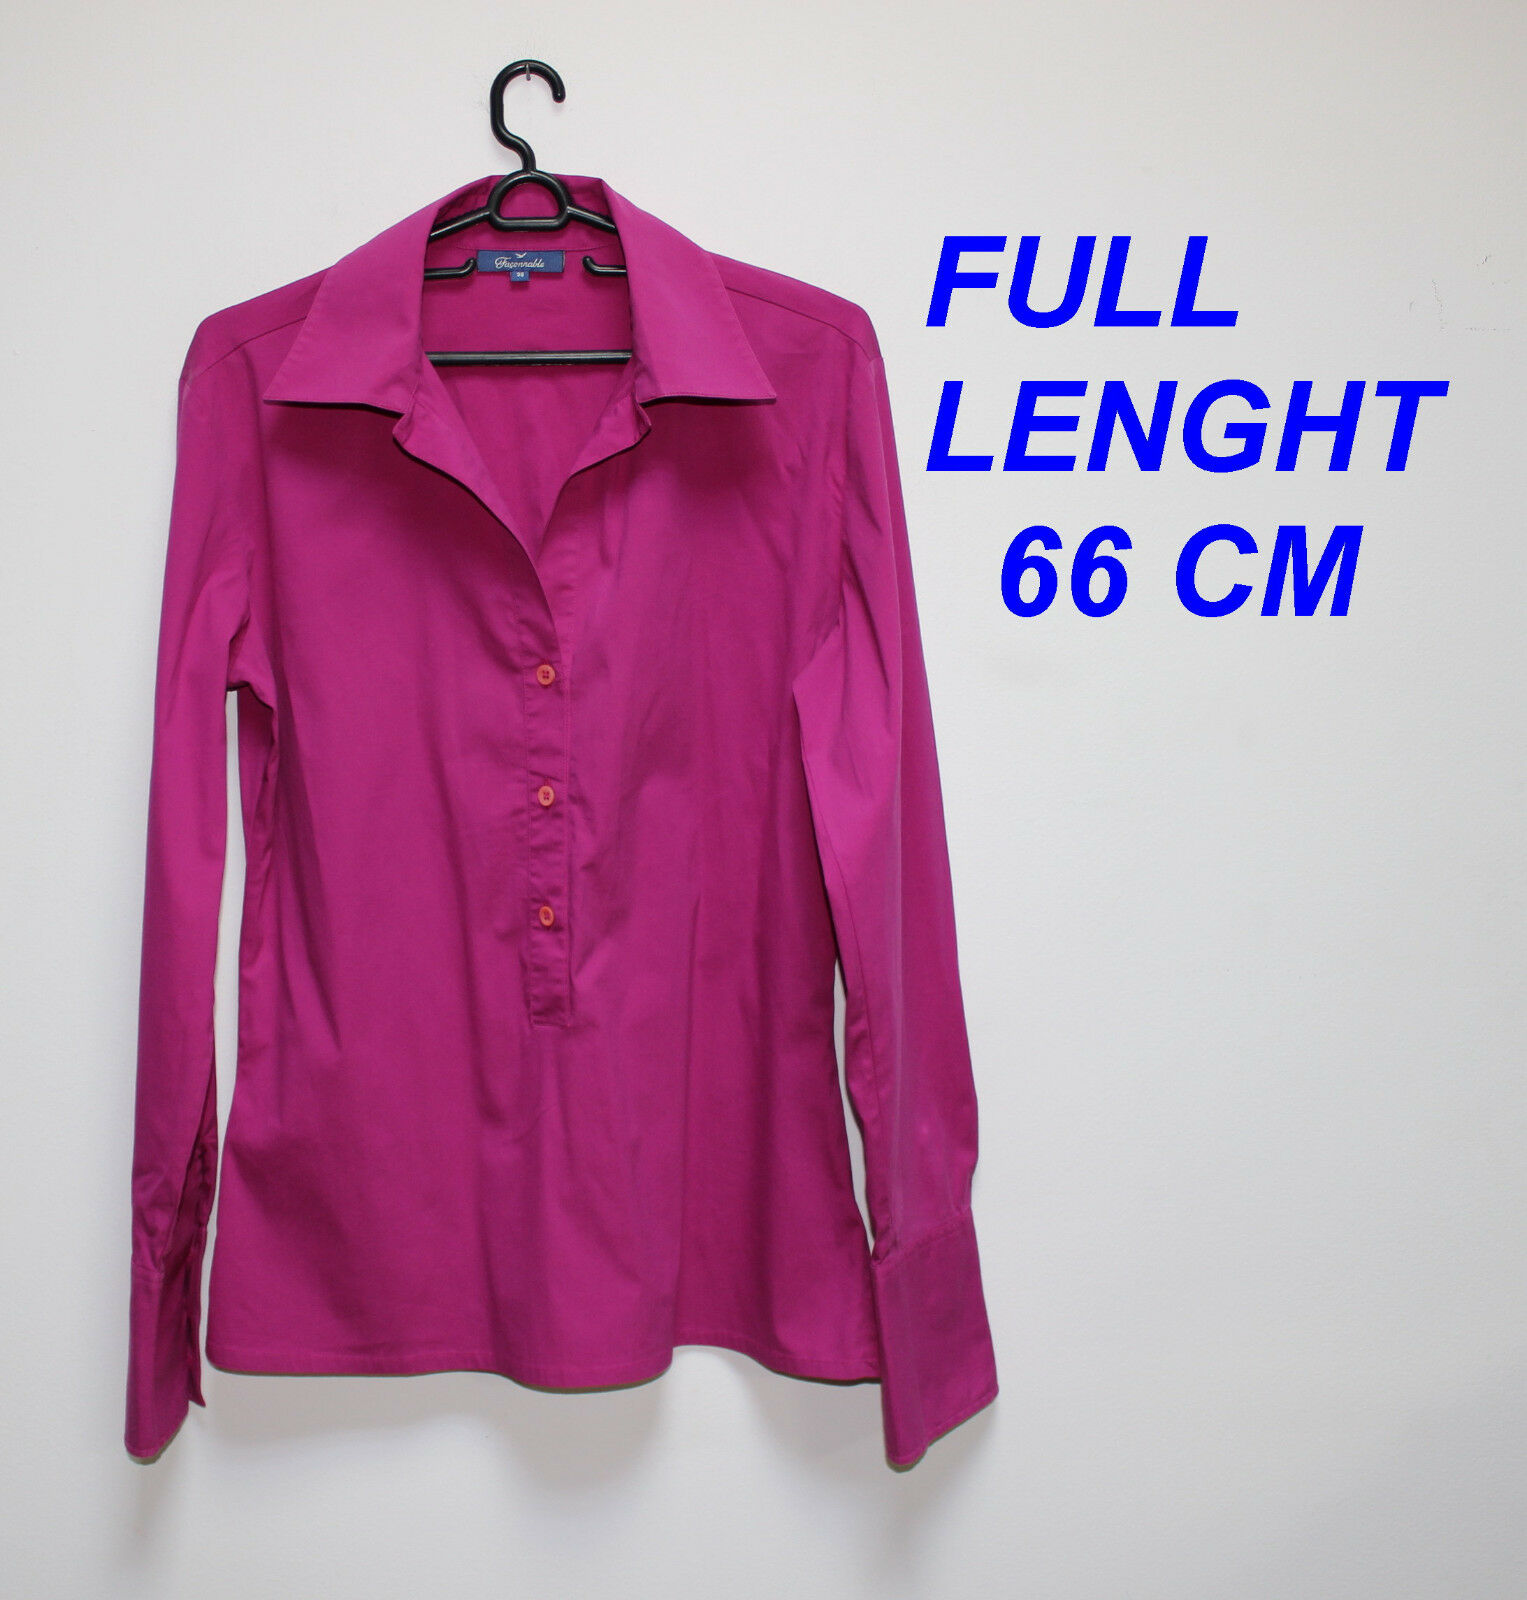 FACONNABLE LADIES WOMAN TOP SHIRT PINK OR PURPLE MARKED SIZE 38 BUTTON FRONT